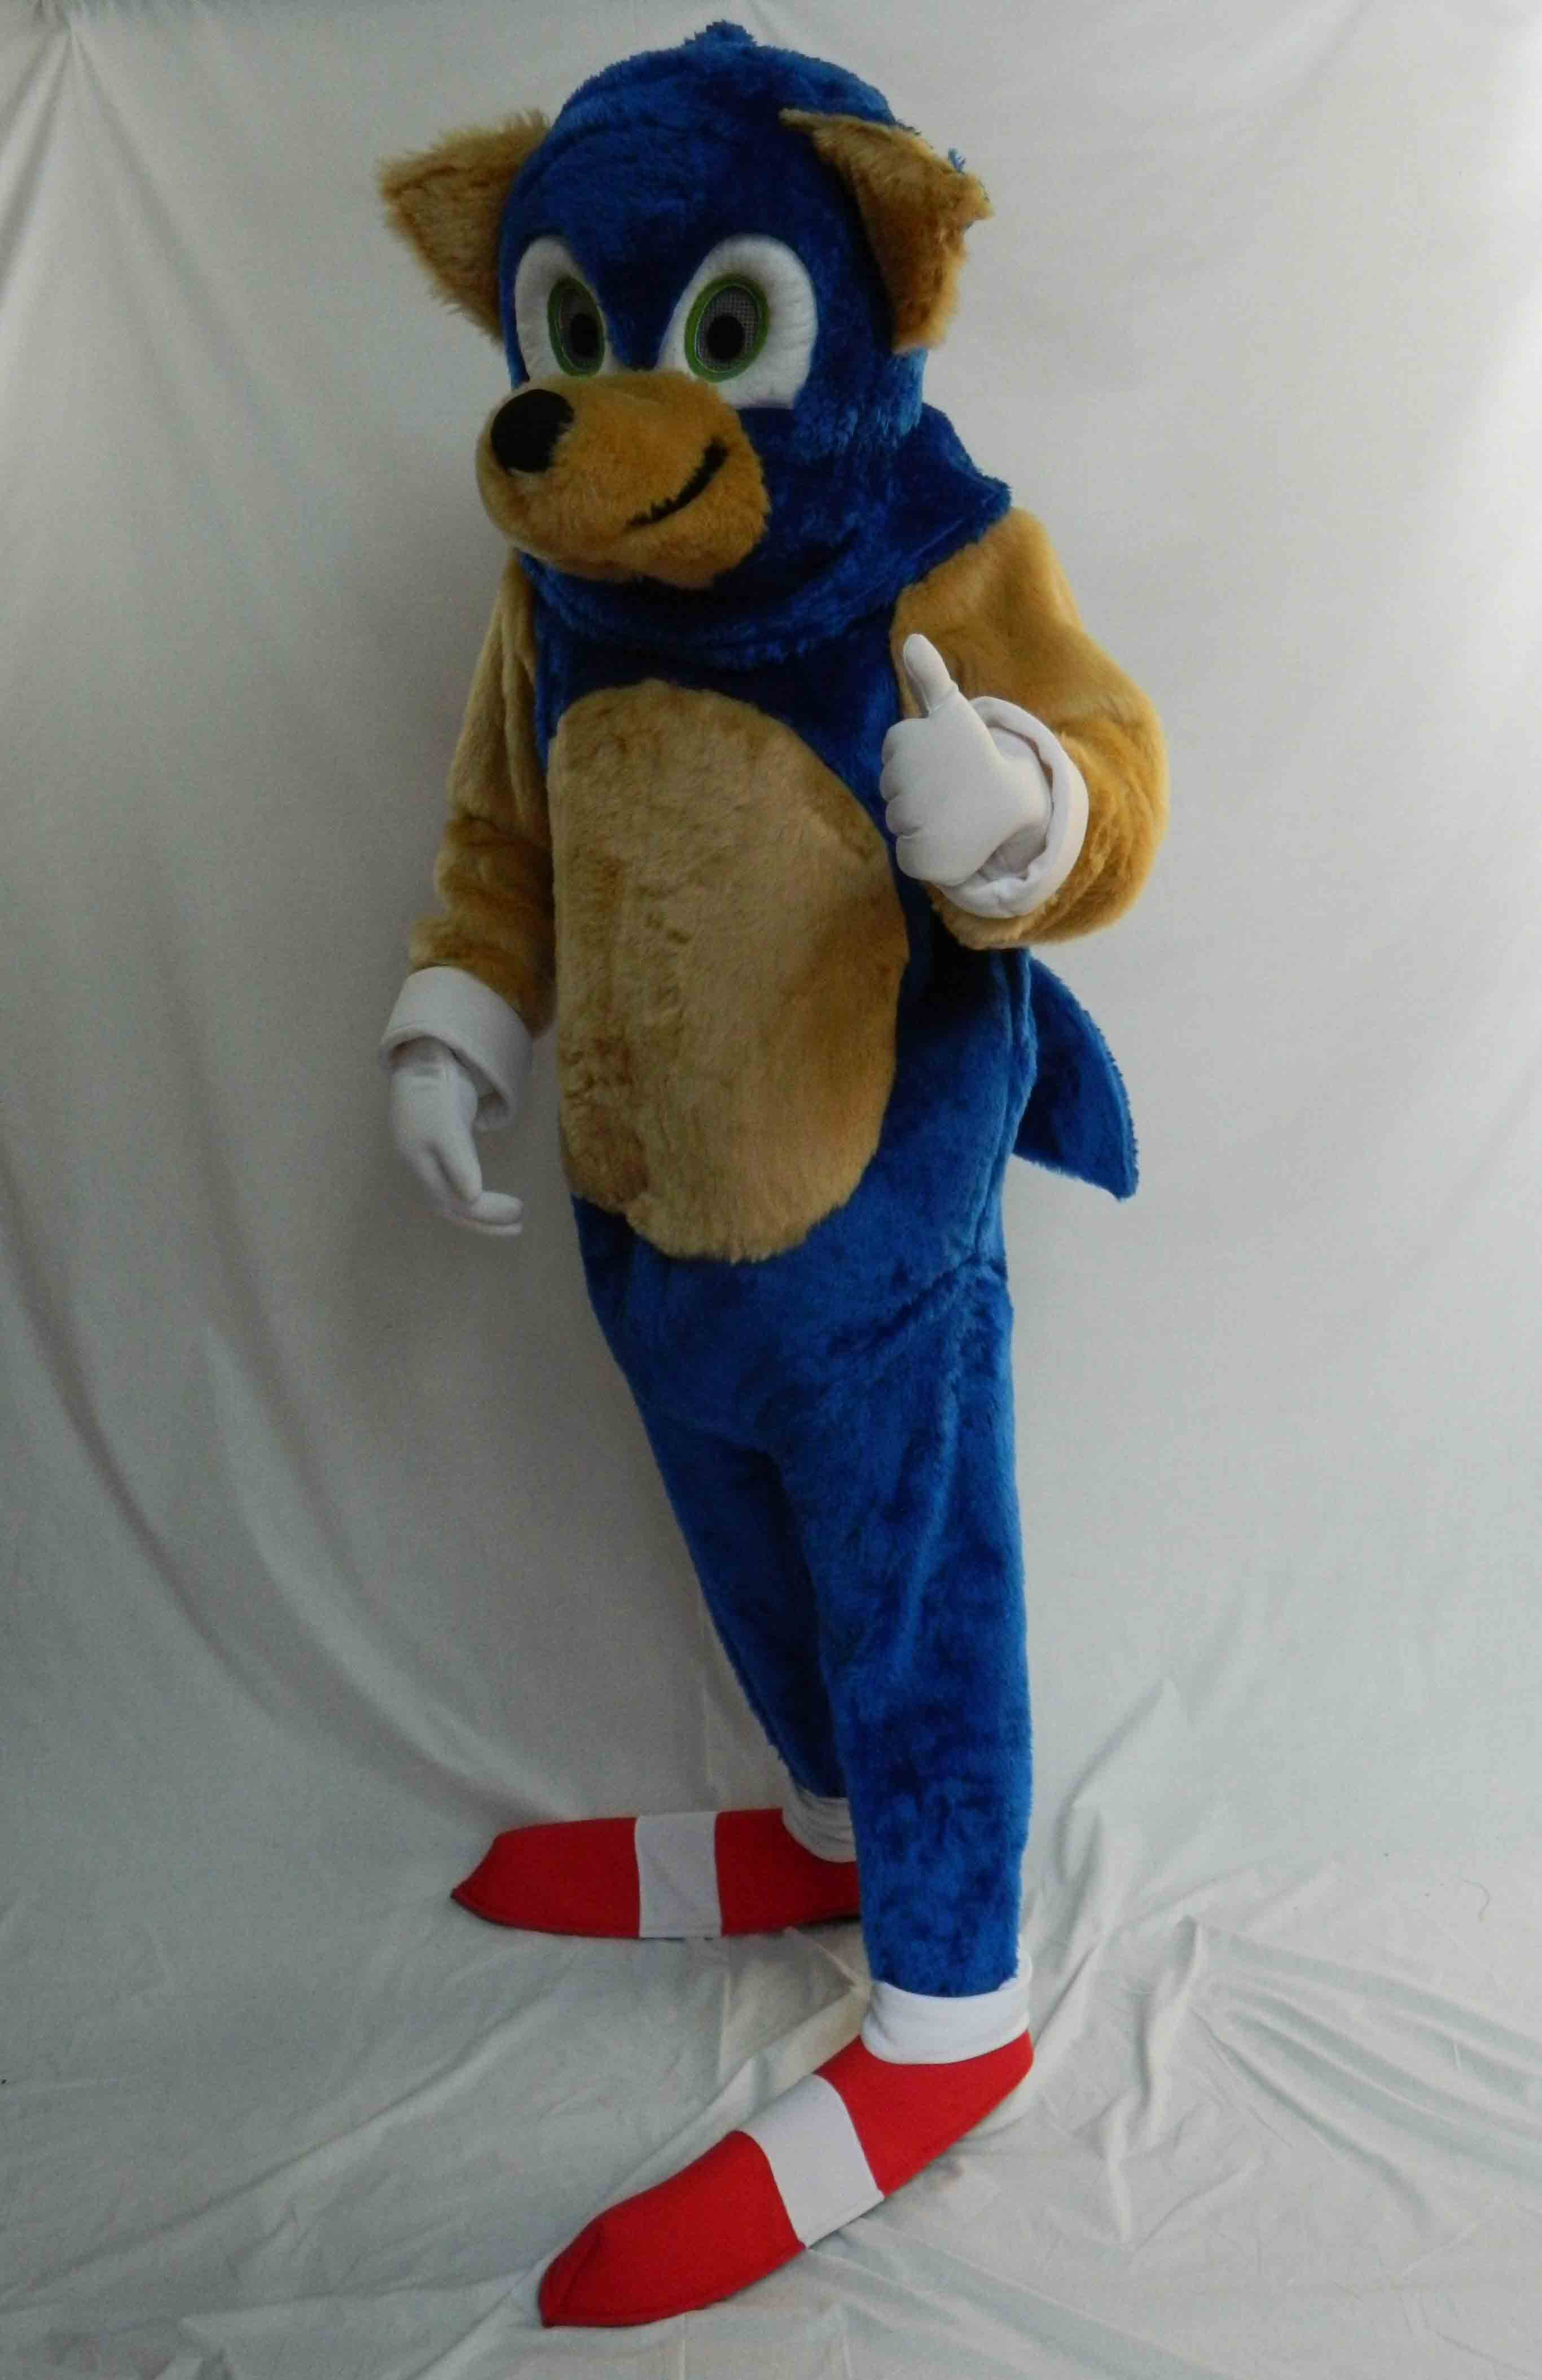 Sonic the Hedgehog & Quality Mascot u0026 Character Costumes for Hire